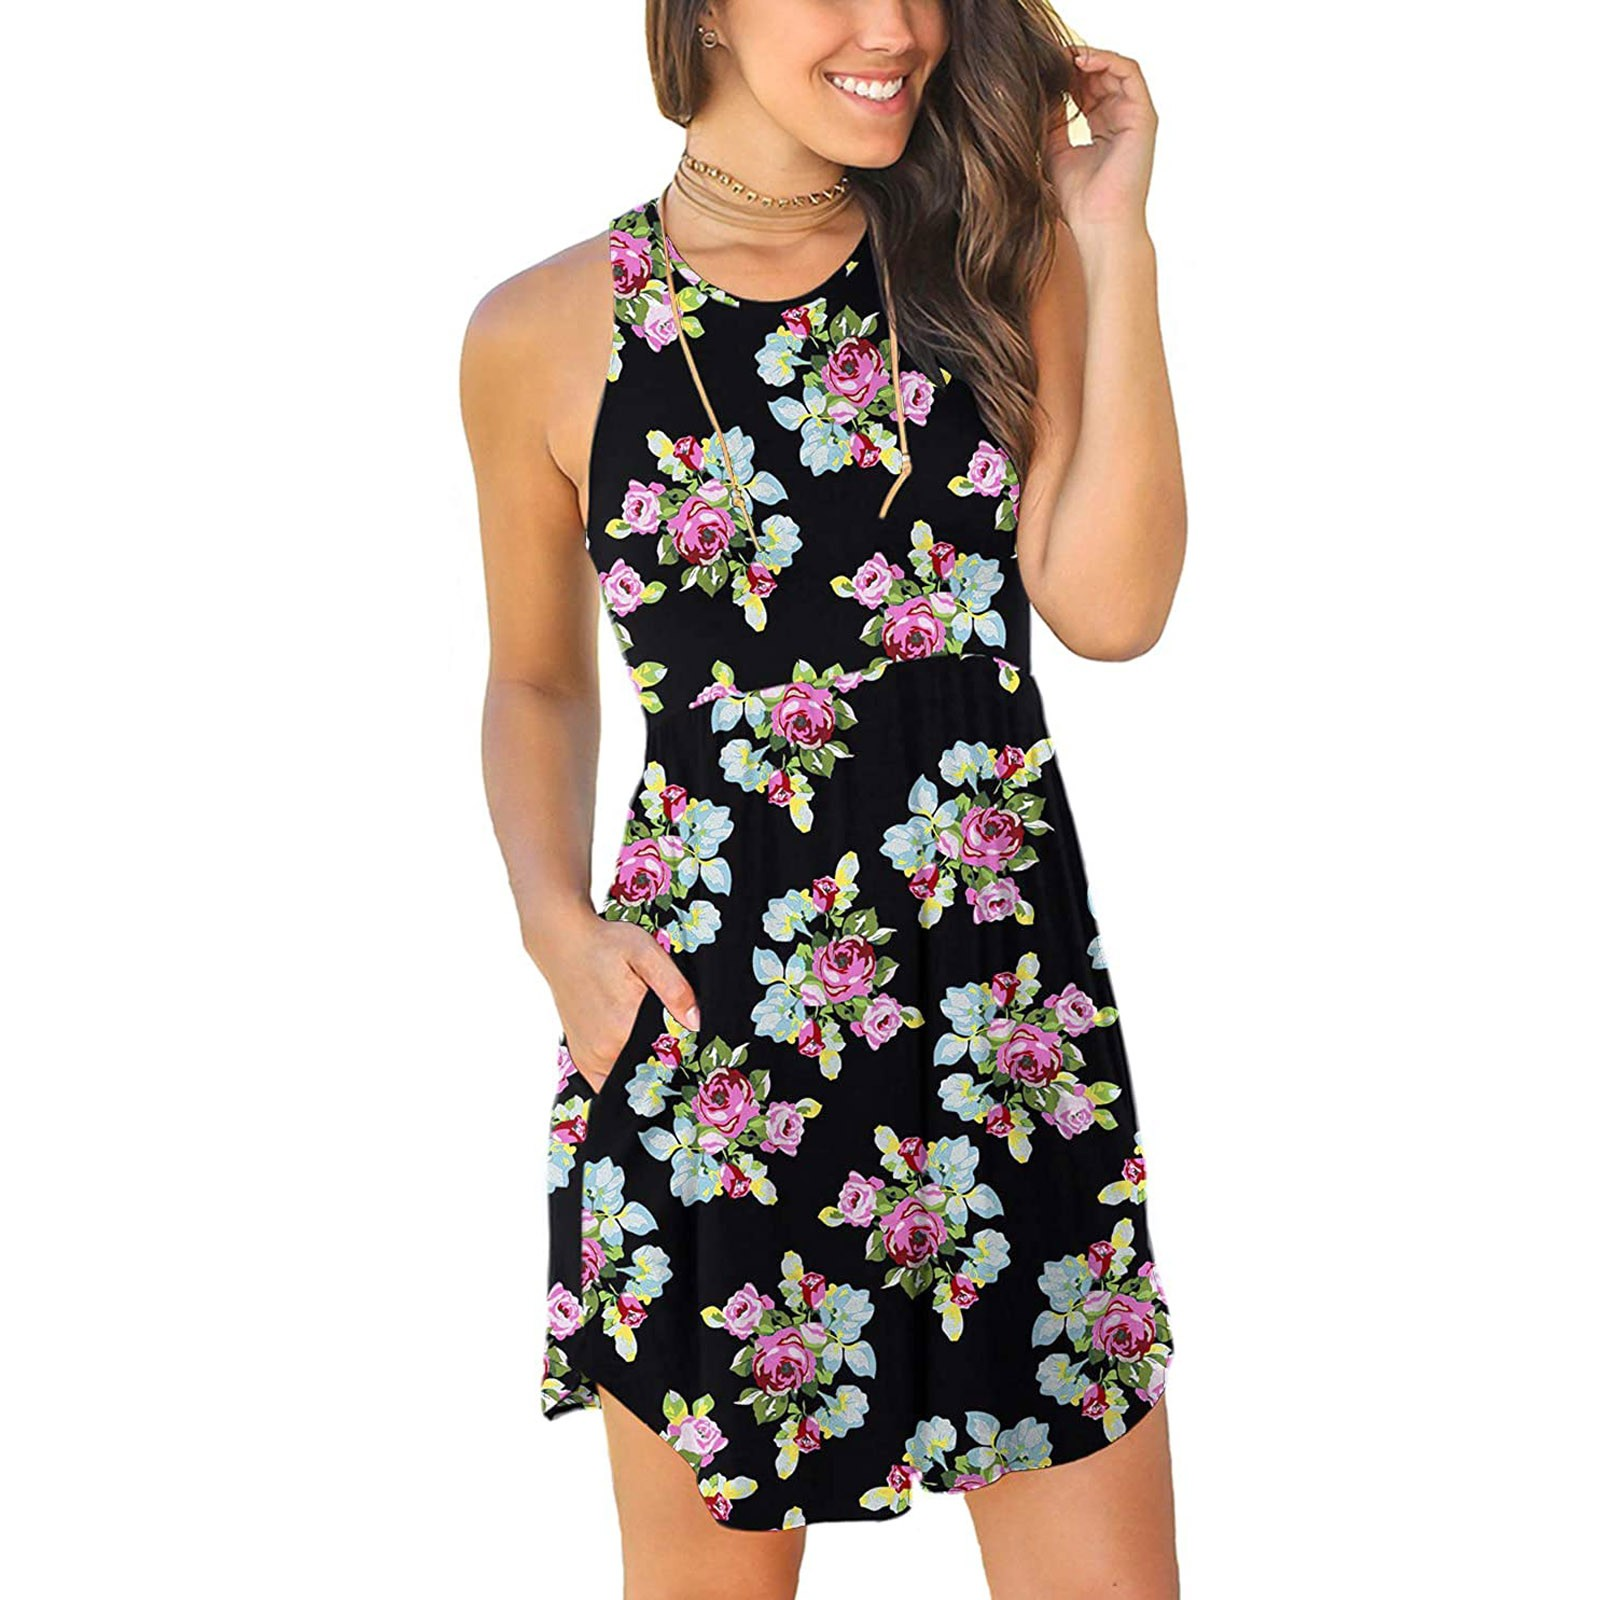 Women's Summer Sleeveless Casual Dresses Swing Cover Up Elastic Sundress with Pockets 5